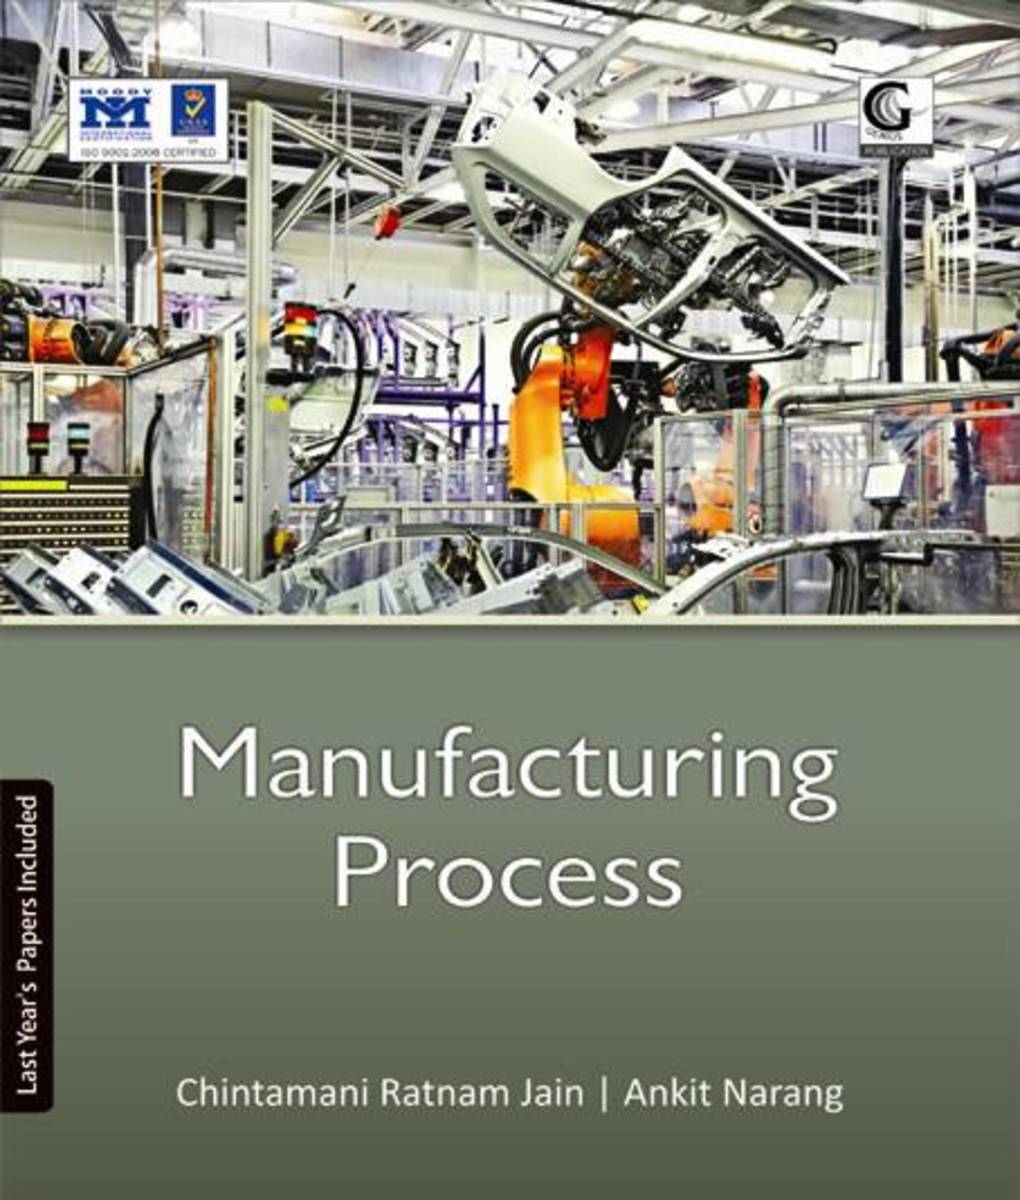 Manufacturing Process Book